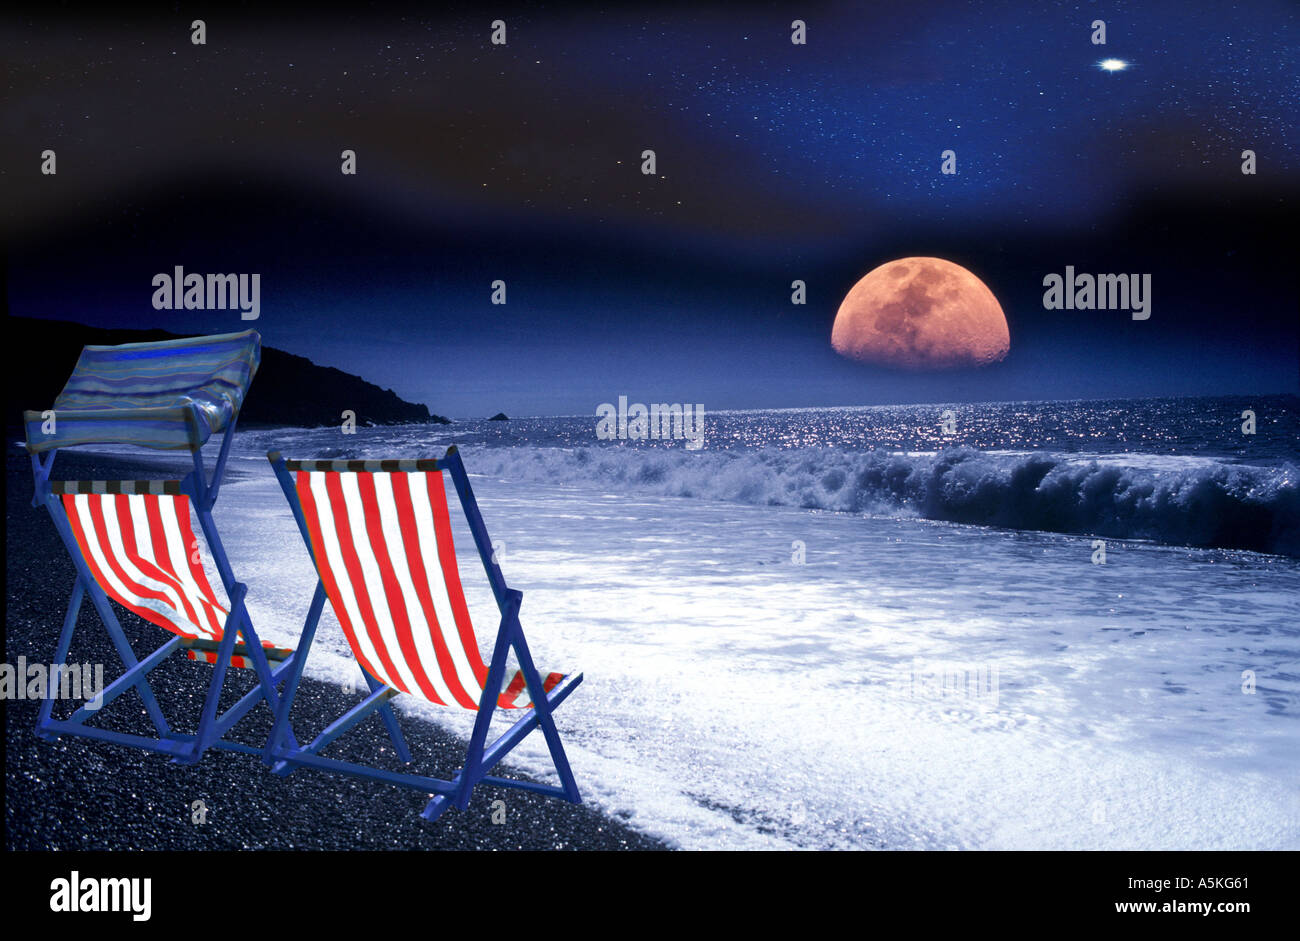 Large moonrise over deserted beach with deckchairs Isle of Wight England - Stock Image